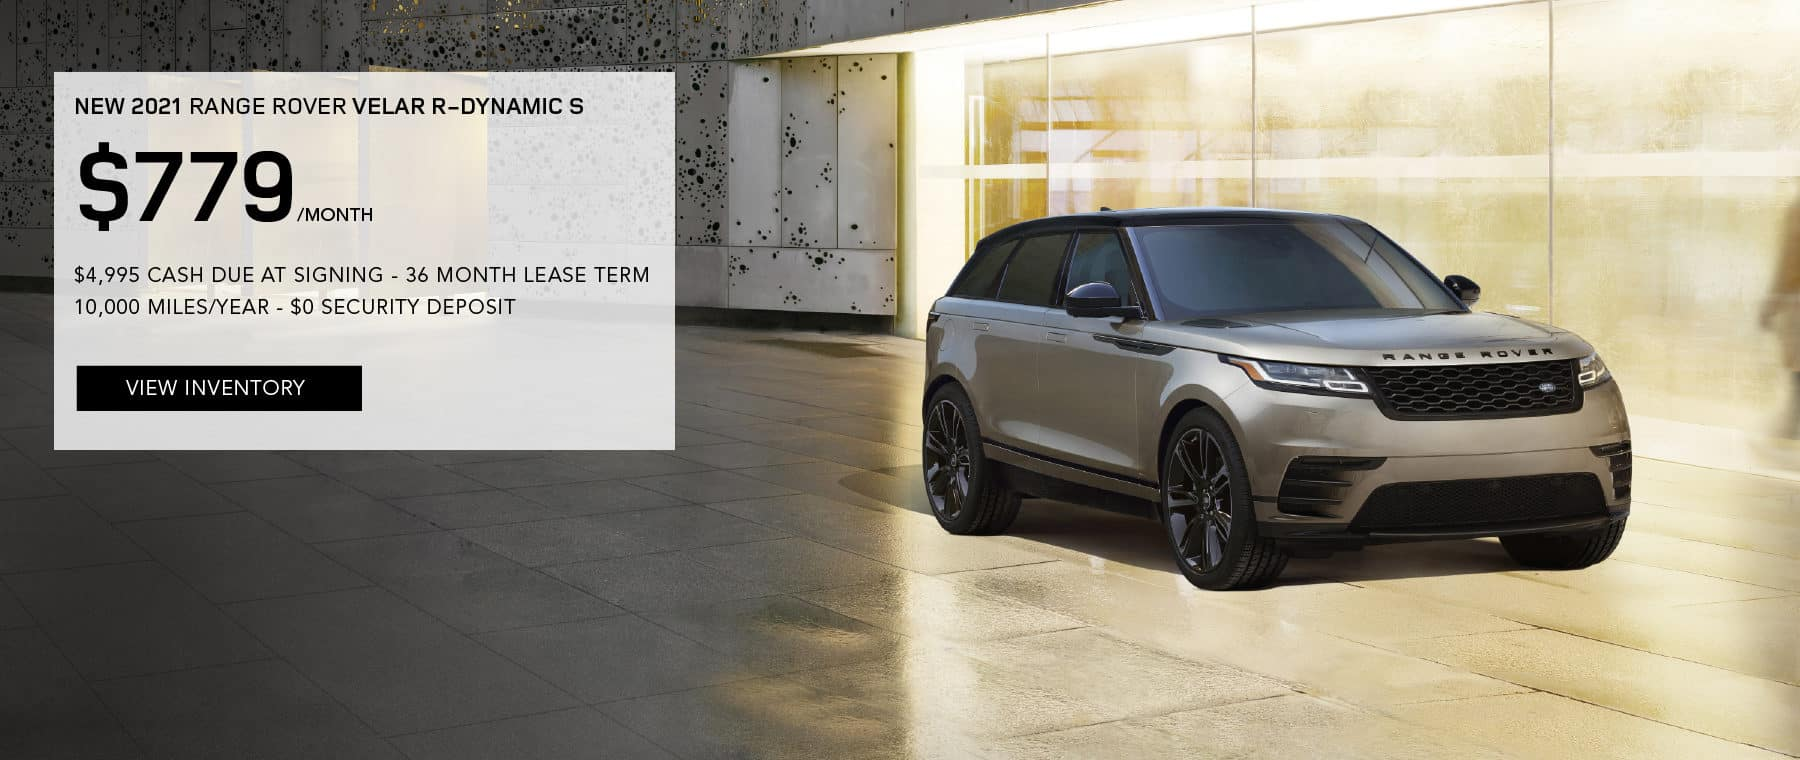 NEW 2021 RANGE ROVER VELAR R-DYNAMIC S. $779 PER MONTH. 36 MONTH LEASE TERM. $4,995 CASH DUE AT SIGNING. $0 SECURITY DEPOSIT. 10,000 MILES PER YEAR. EXCLUDES RETAILER FEES, TAXES, TITLE AND REGISTRATION FEES, PROCESSING FEE AND ANY EMISSION TESTING CHARGE. OFFER ENDS 9/30/2021. VIEW INVENTORY. BROWN RANGE ROVER VELAR PARKED IN CITY.